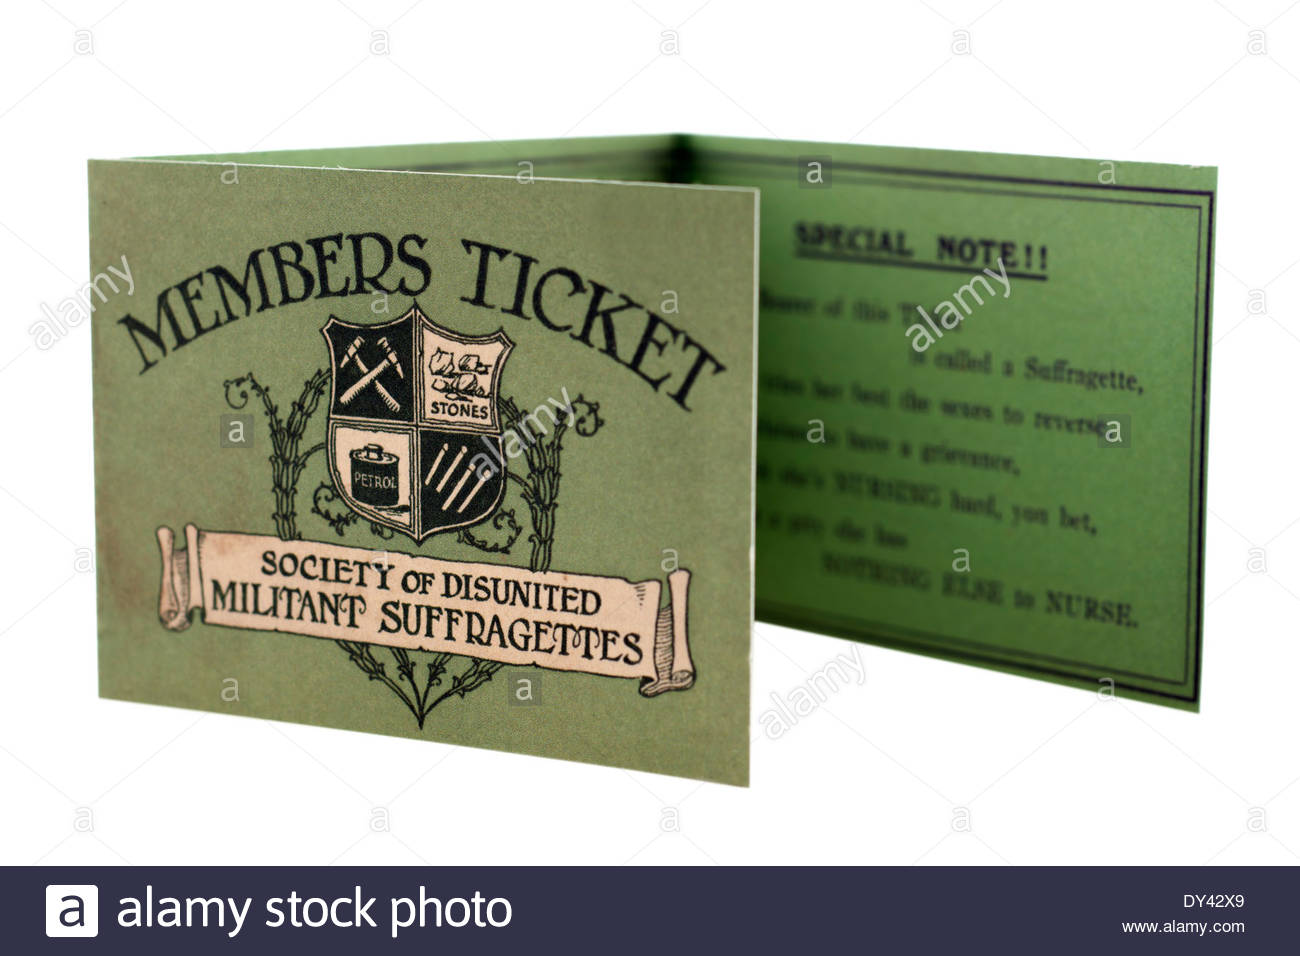 Vintage members ticket for the Society of Disunited Militant Suffragettes: EDITORIAL ONLY - Stock Image